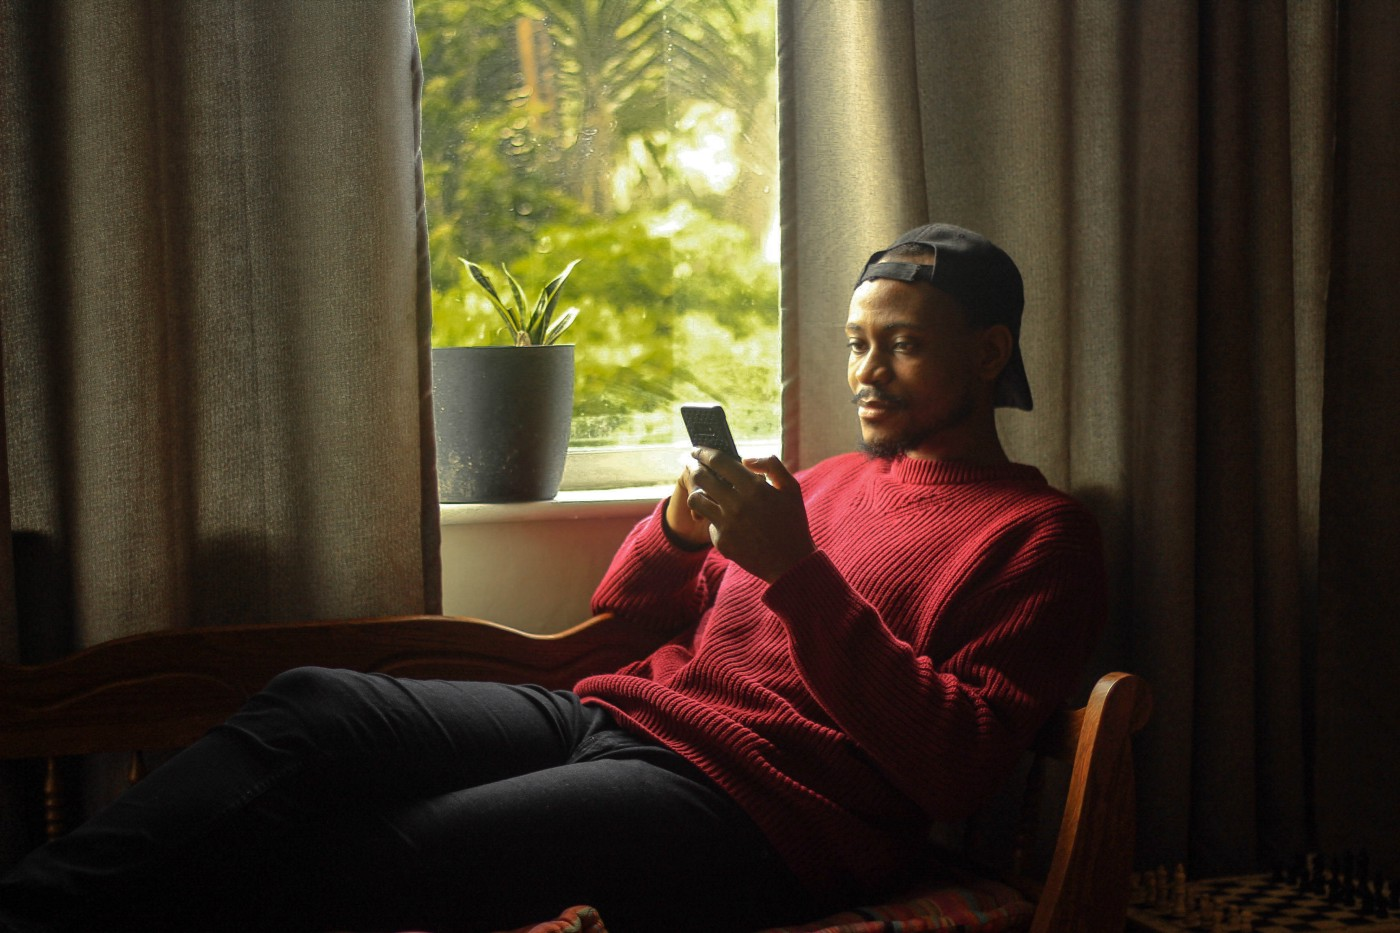 Black man rests by his window while looking at his phone.